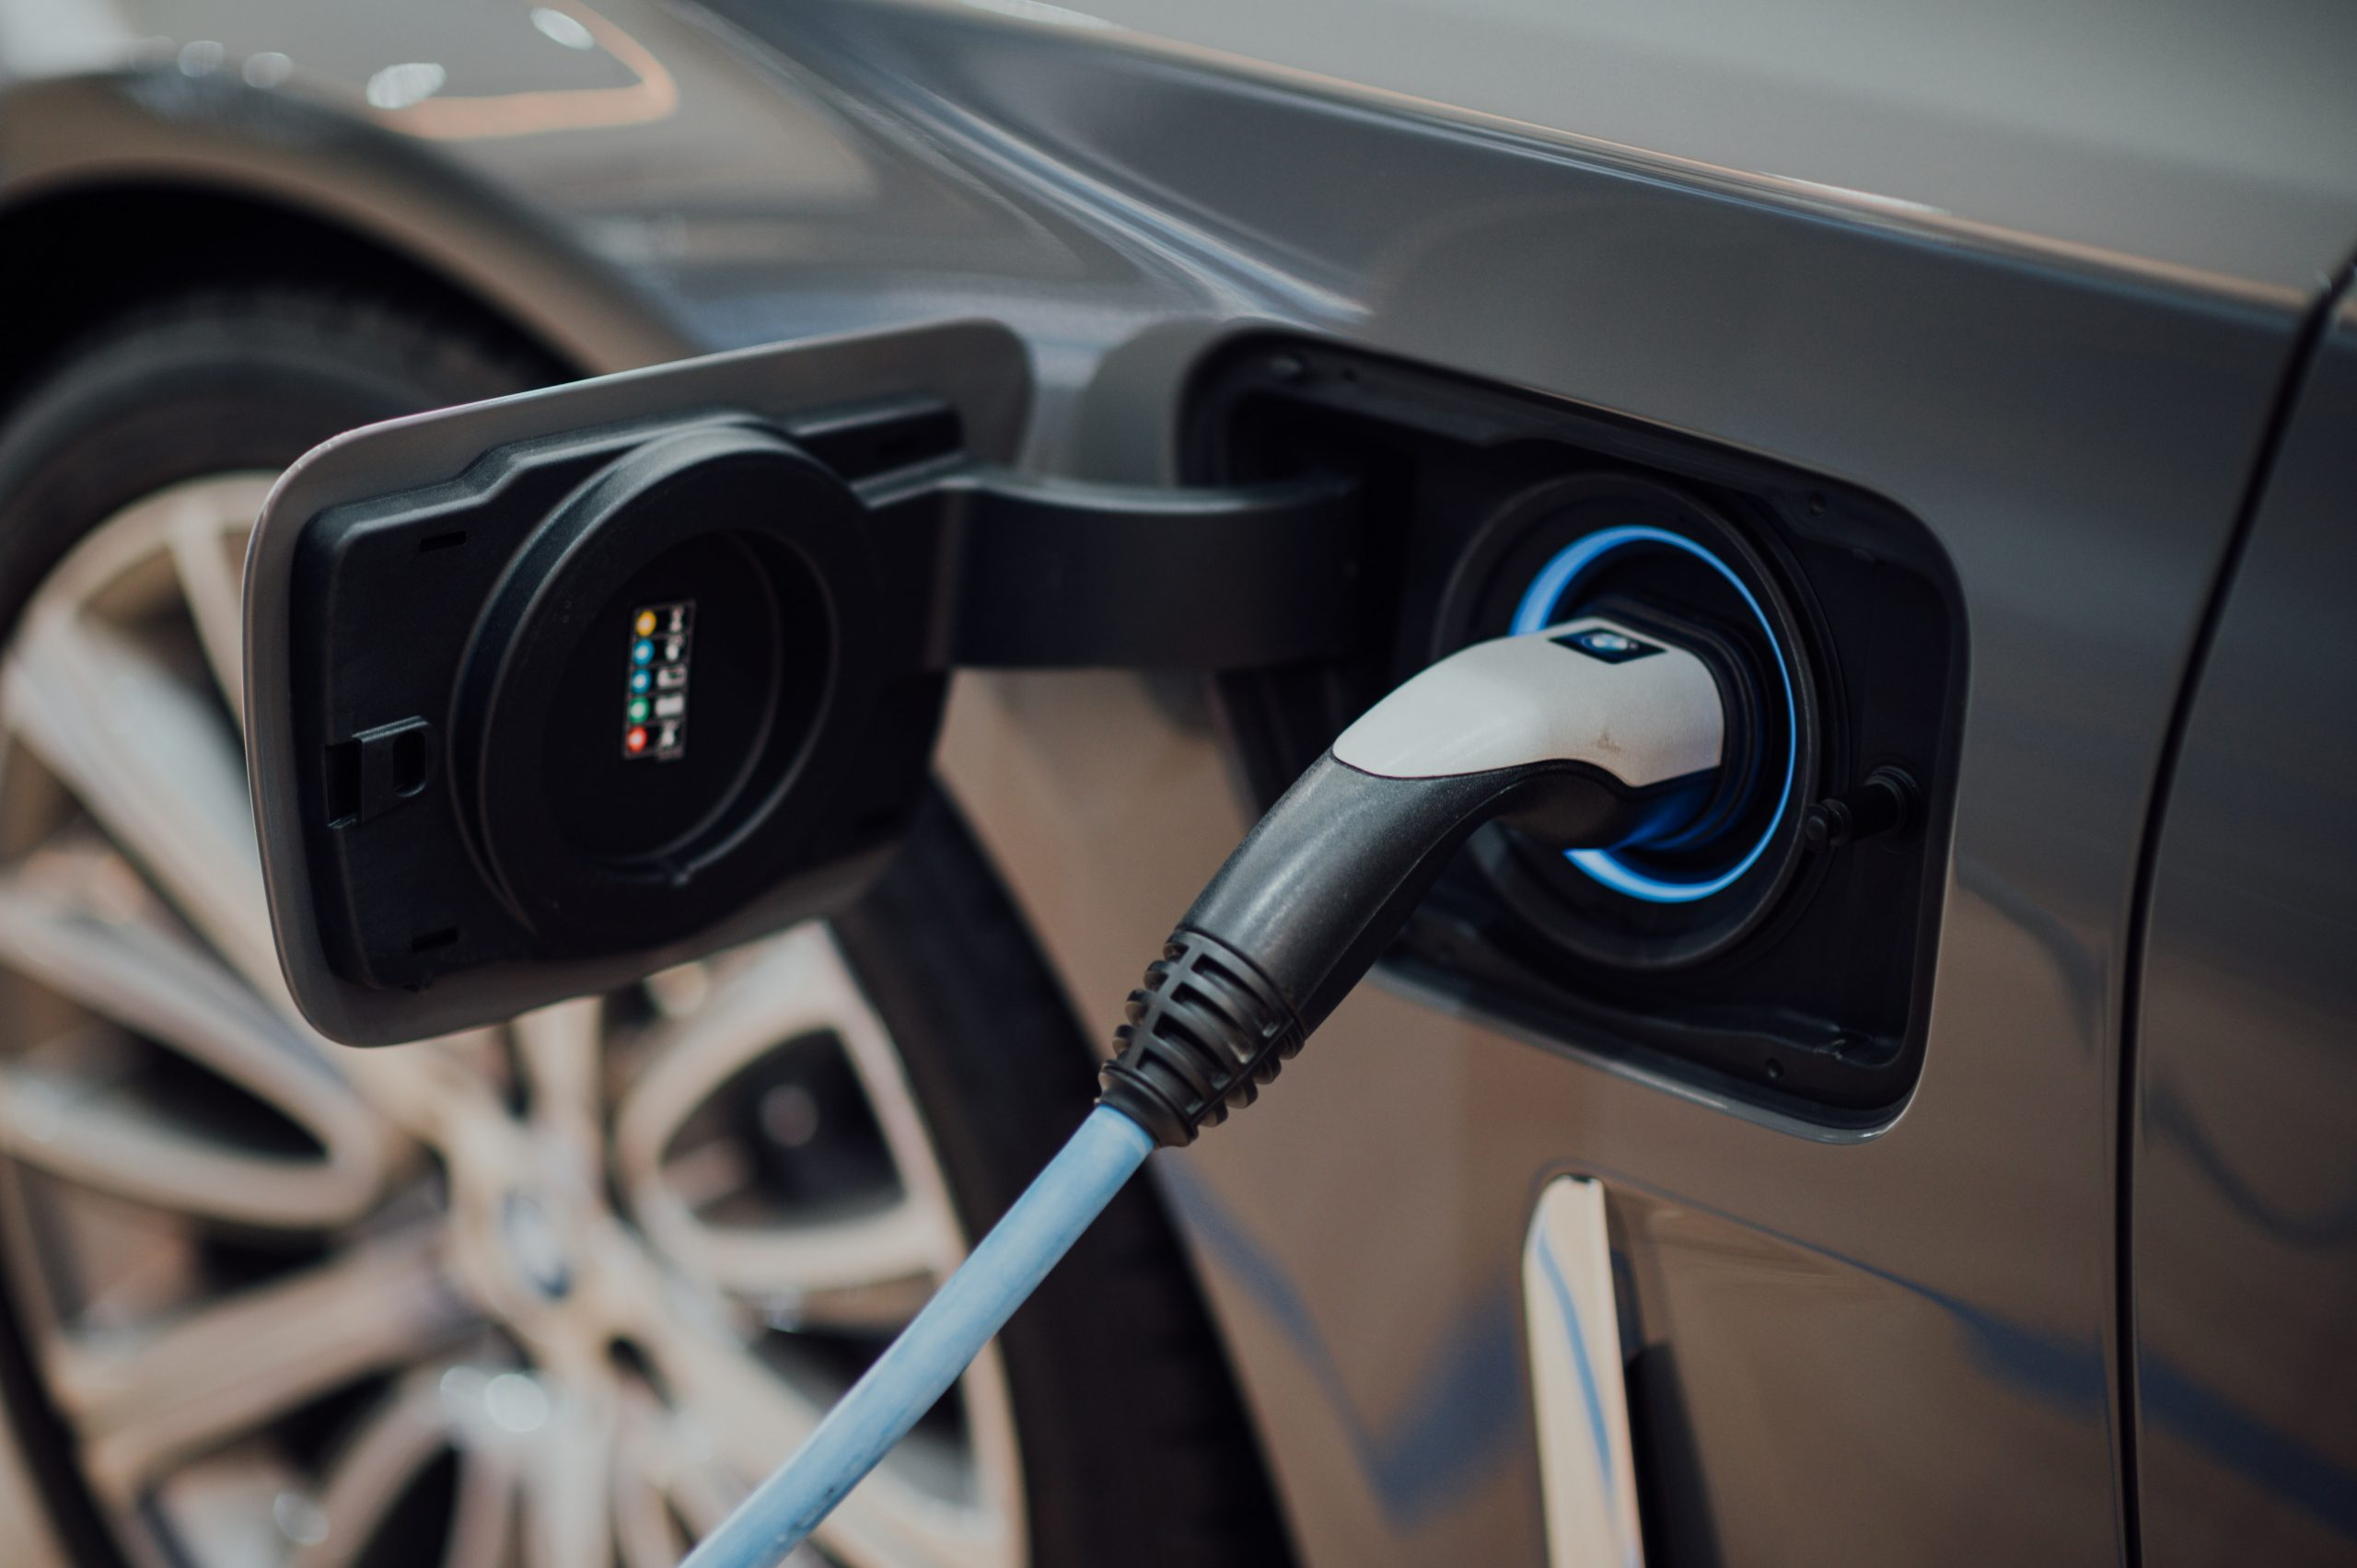 Recruitment - image of electric cars